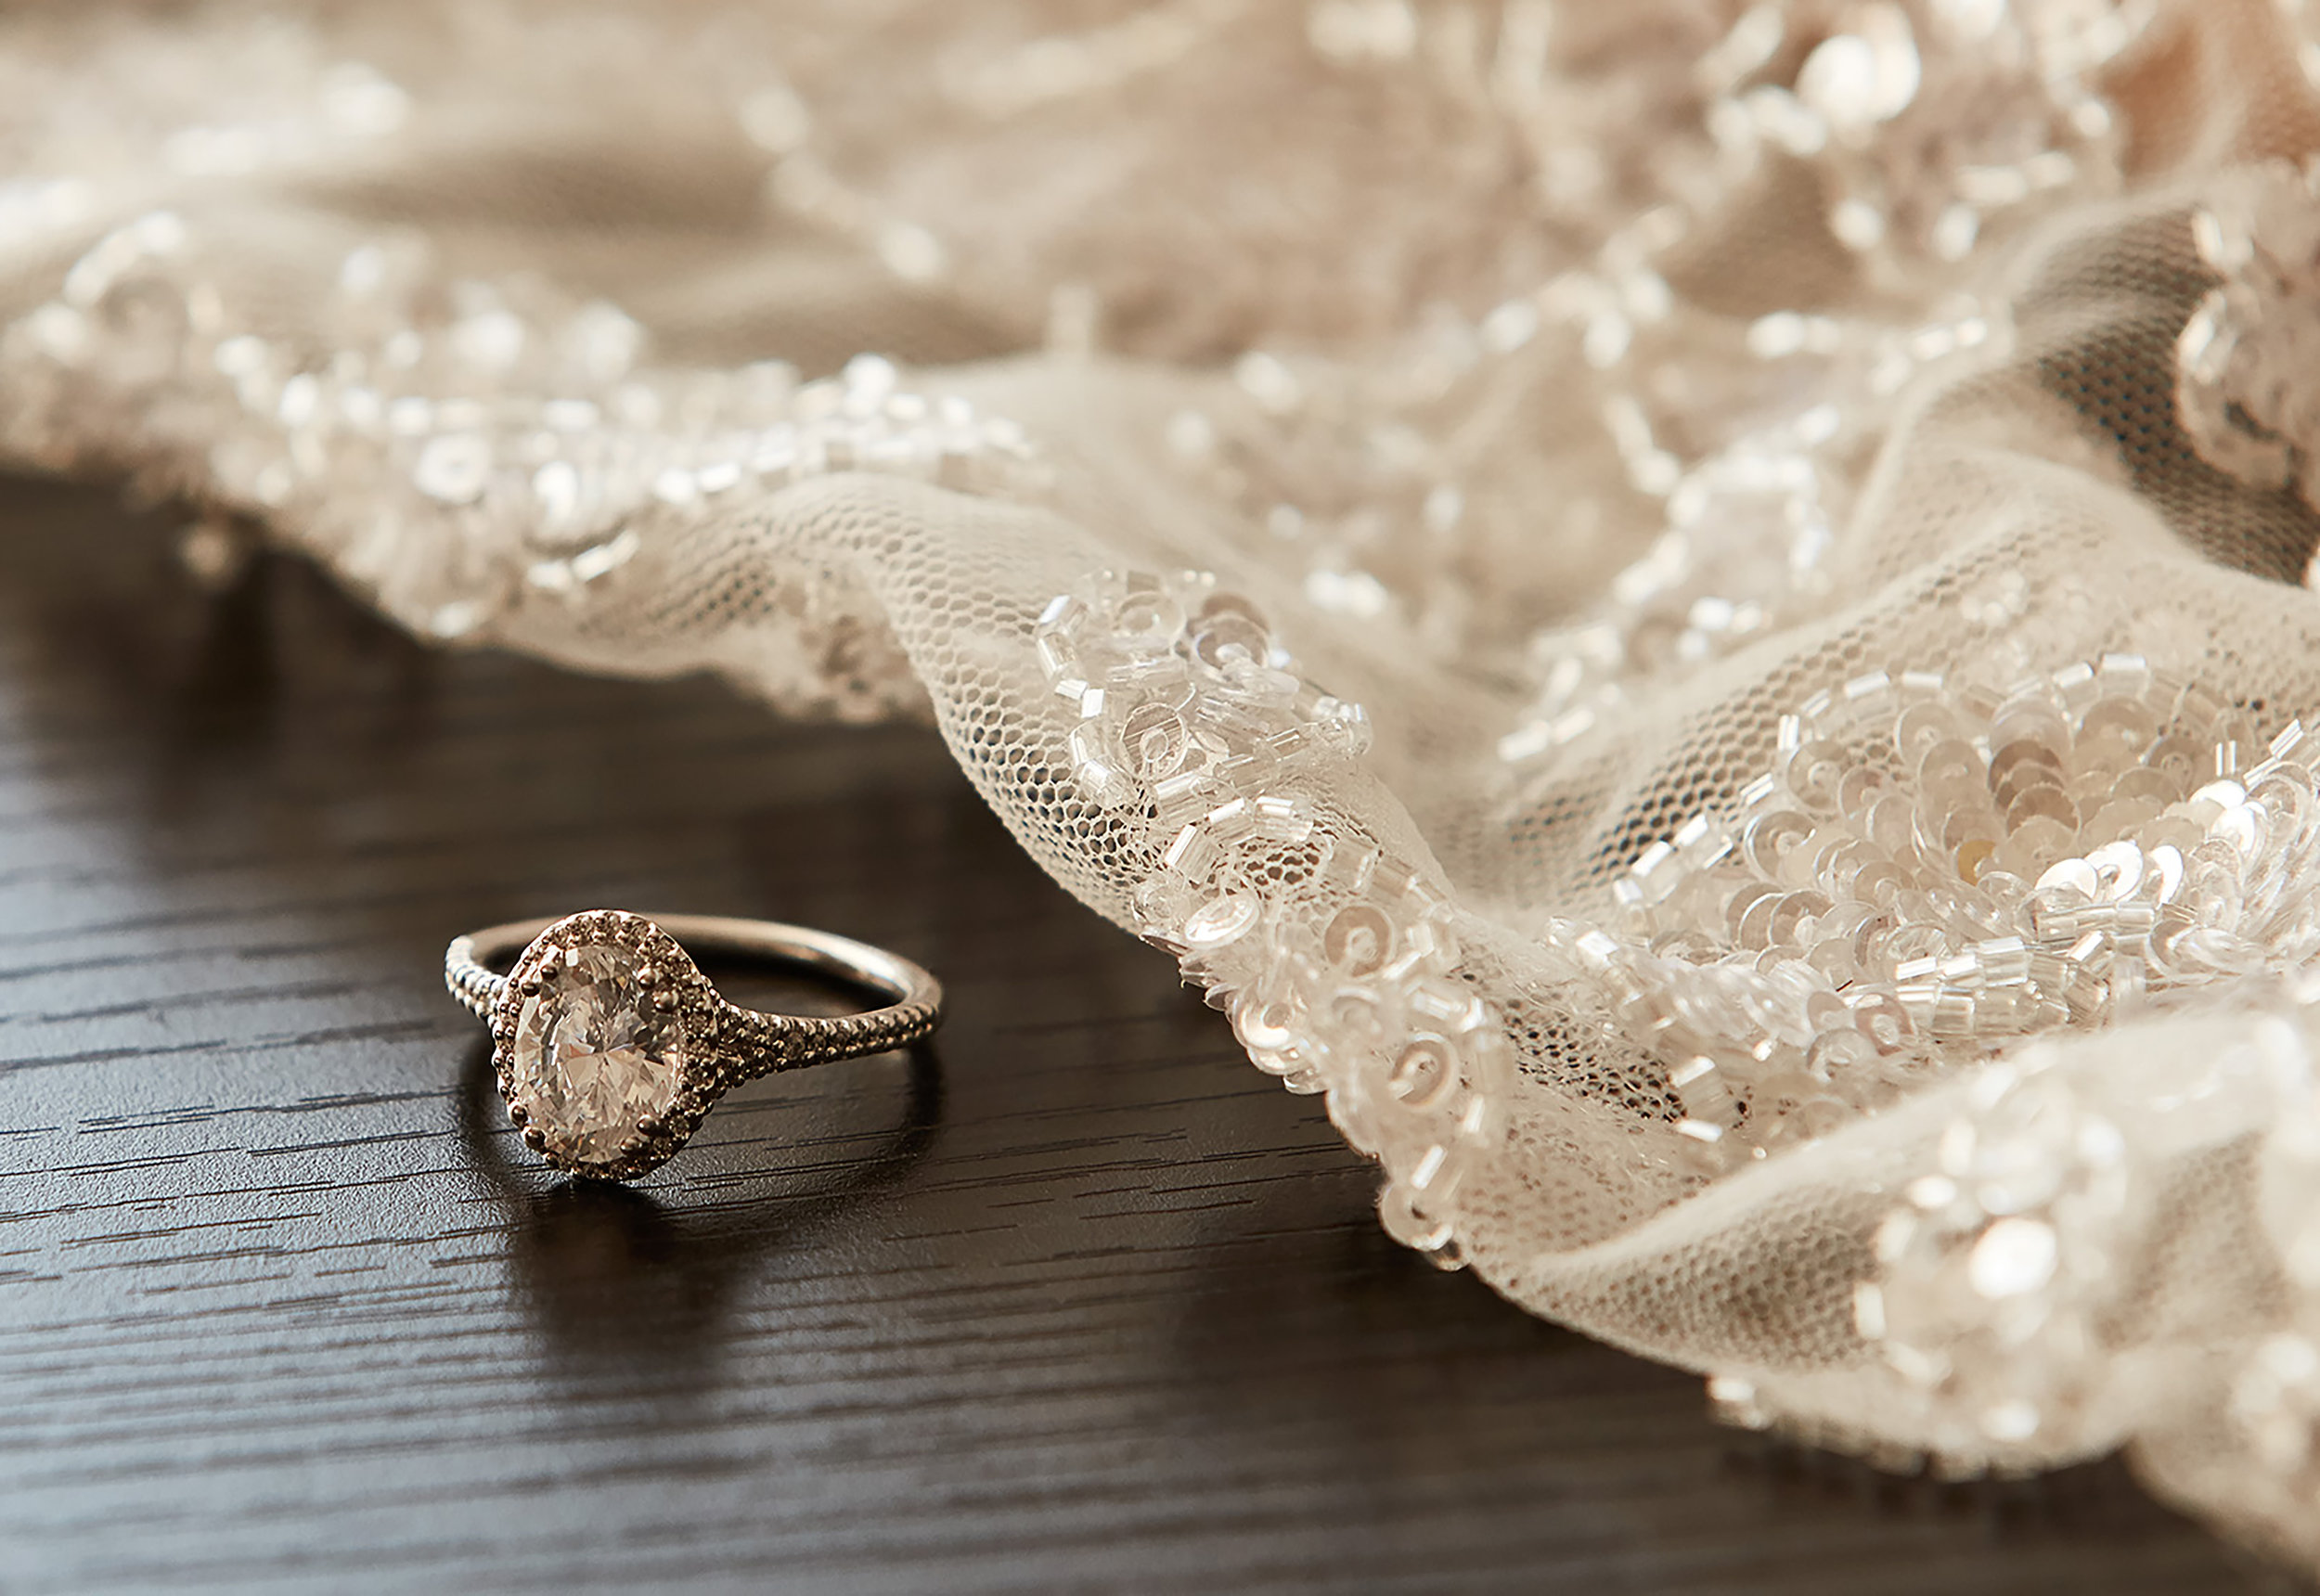 Rules for the engagement ring